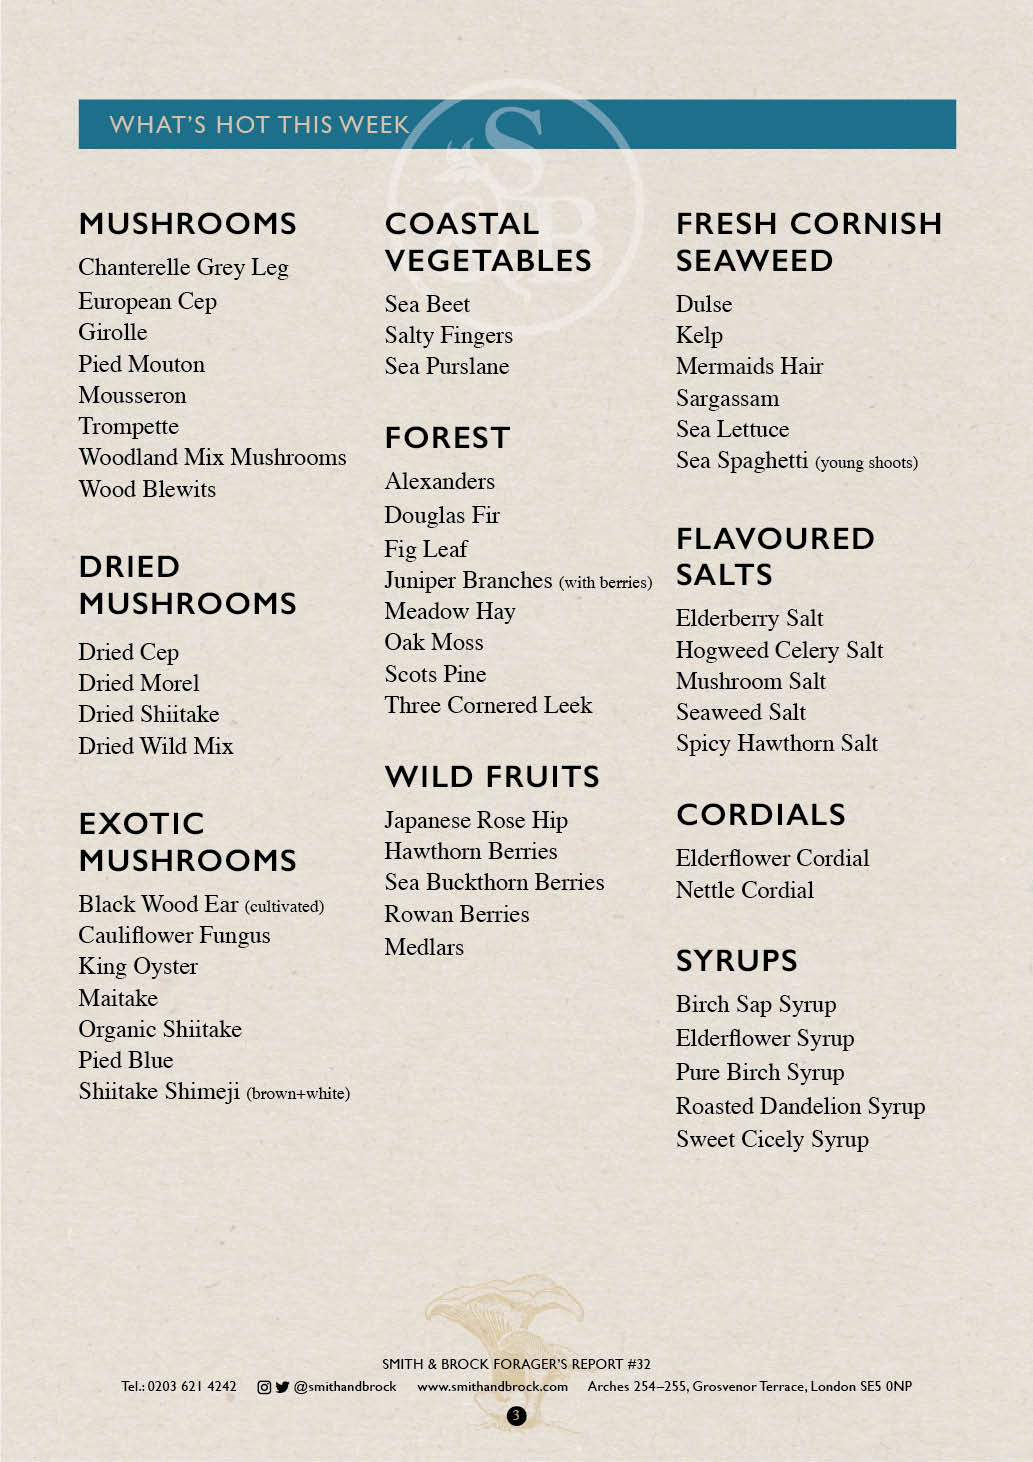 Smith&Brock Foraged Products Report 11 Nov 2019 32 3